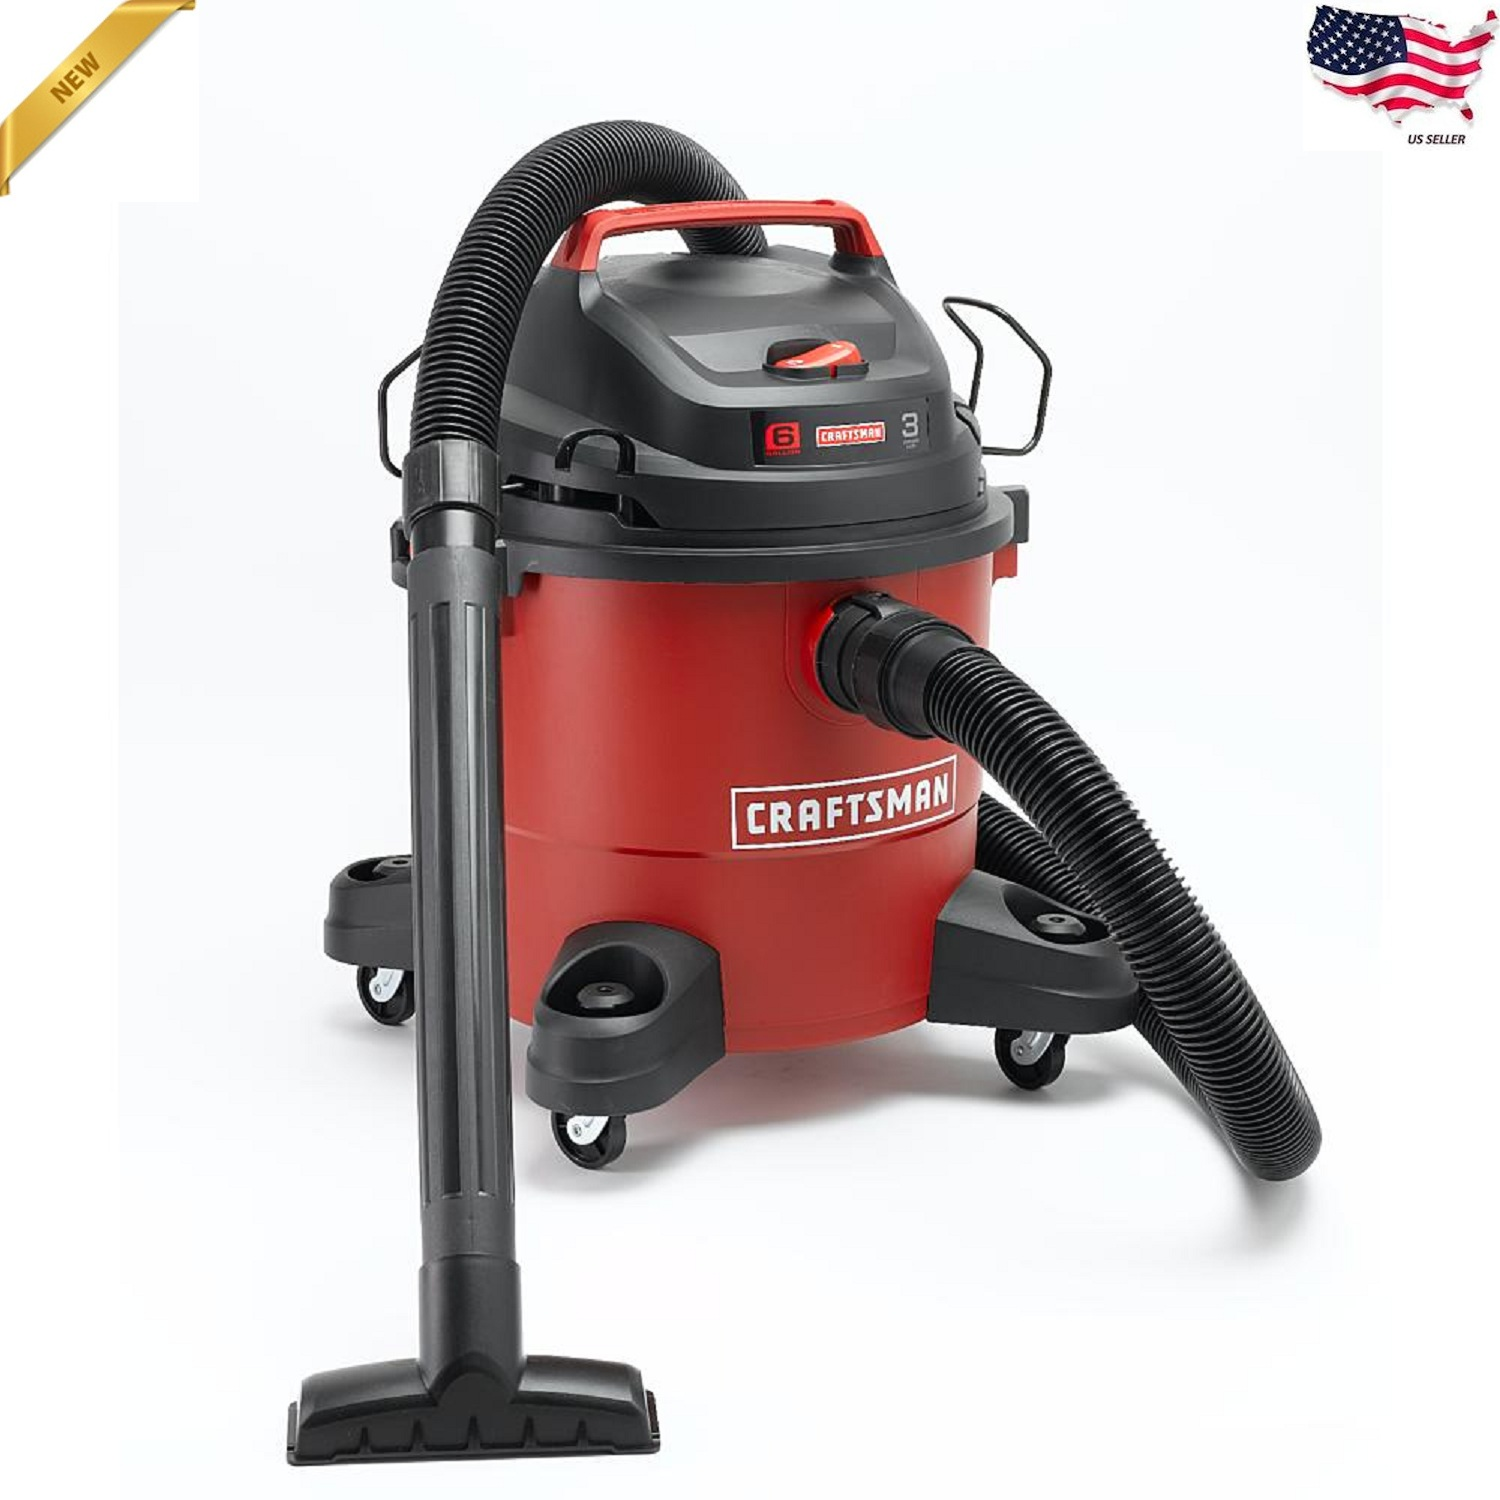 Craftsman Wet Dry Vac 6 Gallon Vacuum Cleaner 3.0 HP Portabl